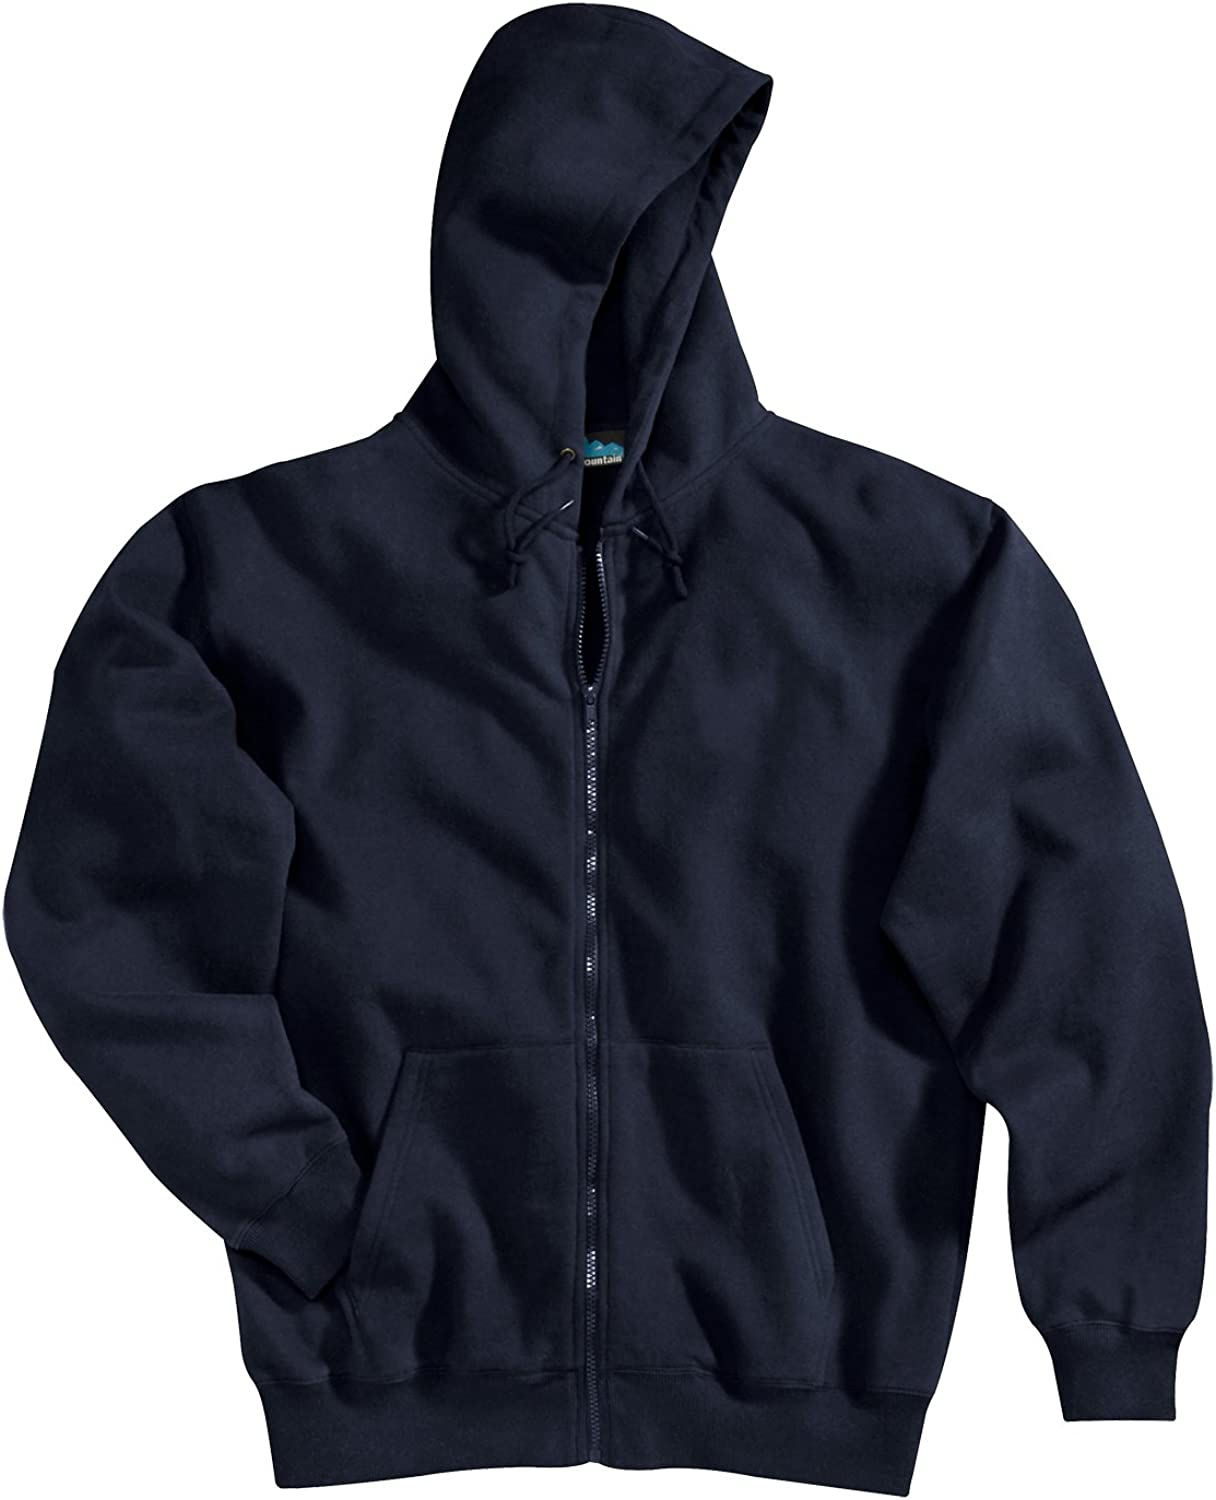 Tri-Mountain 690 Cotton/poly sueded finish hooded full zip sweatshirt - Navy - 3XLT